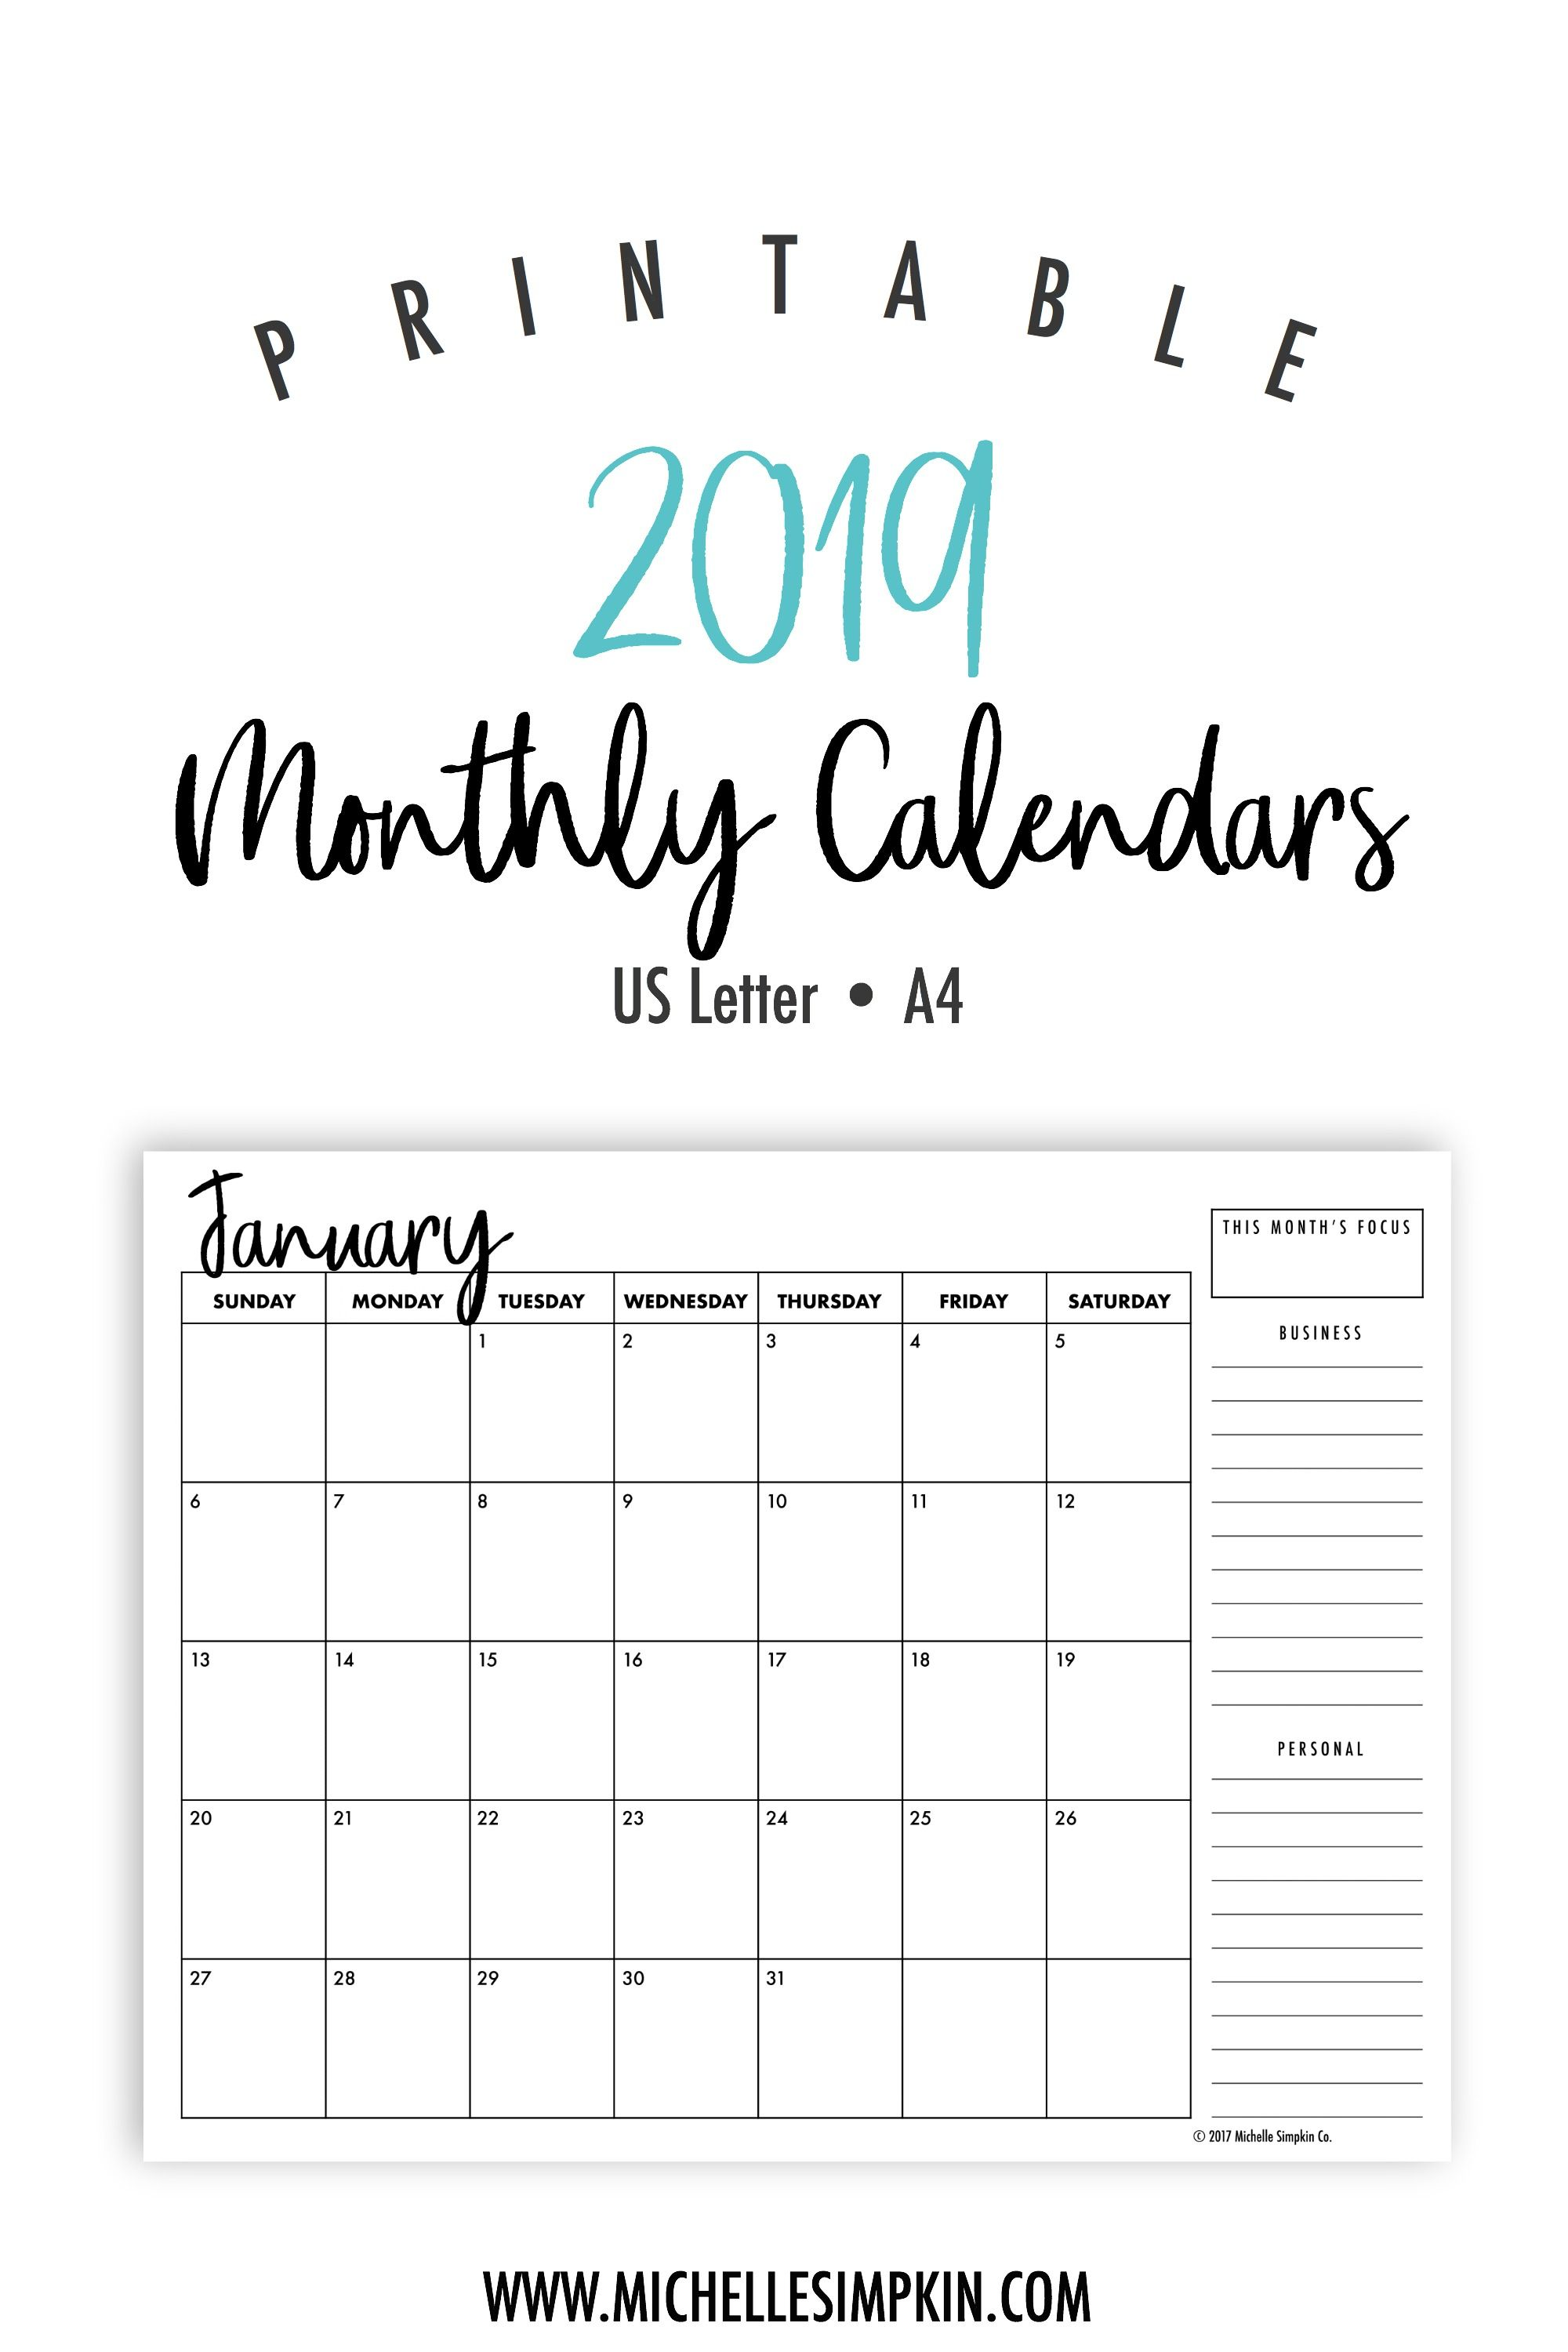 Download Monthly Calendar 2019 2019 Printable Monthly Calendars • Landscape • US Letter • A4